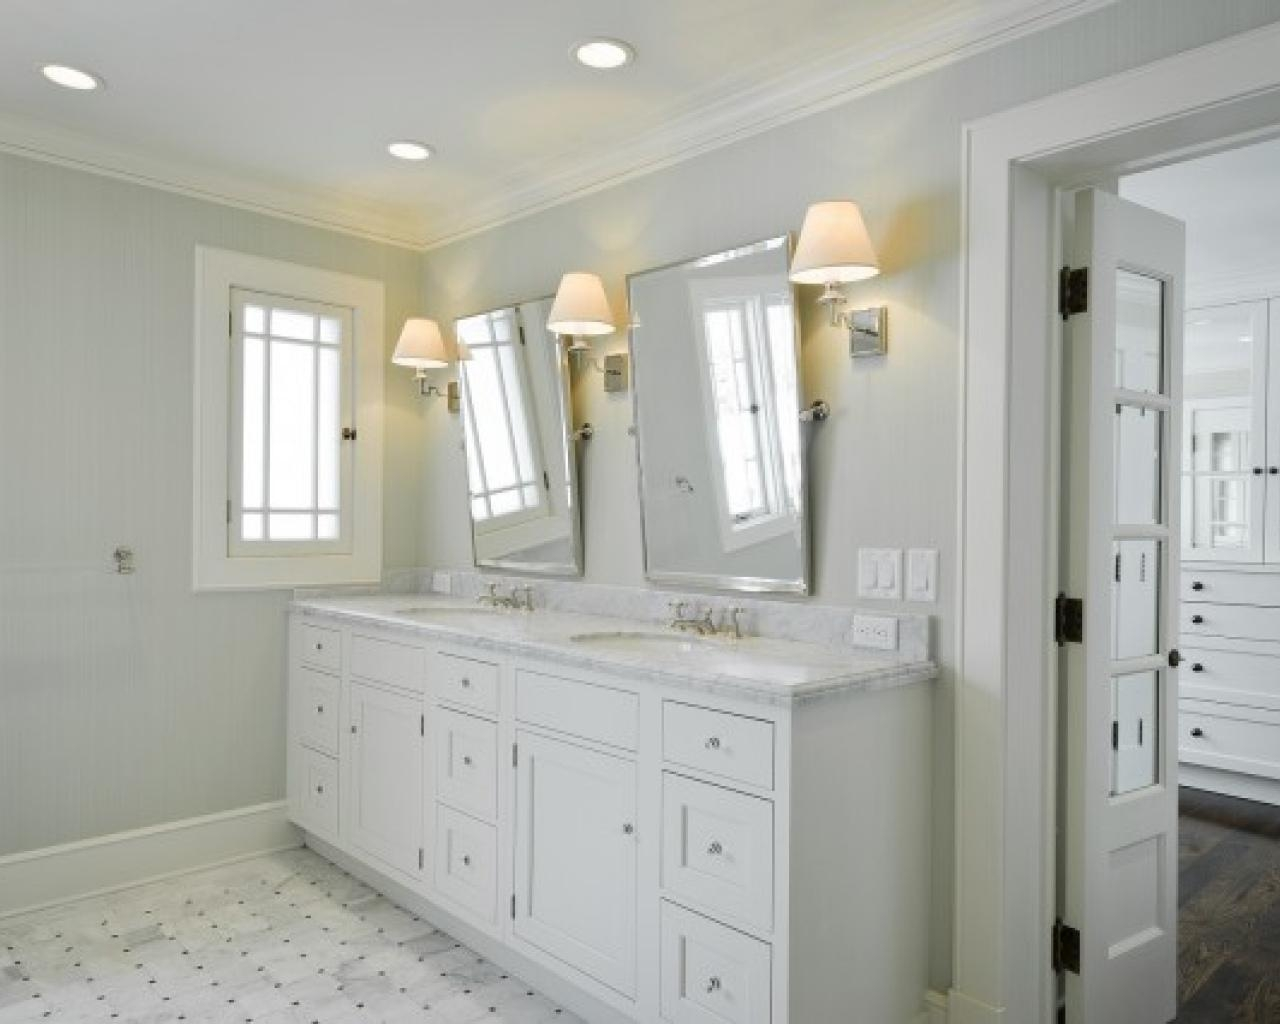 Bathroom Vanity Mirrors For Aesthetics And Functions – Traba Homes With Bathroom Cabinets Mirrors (Image 10 of 20)